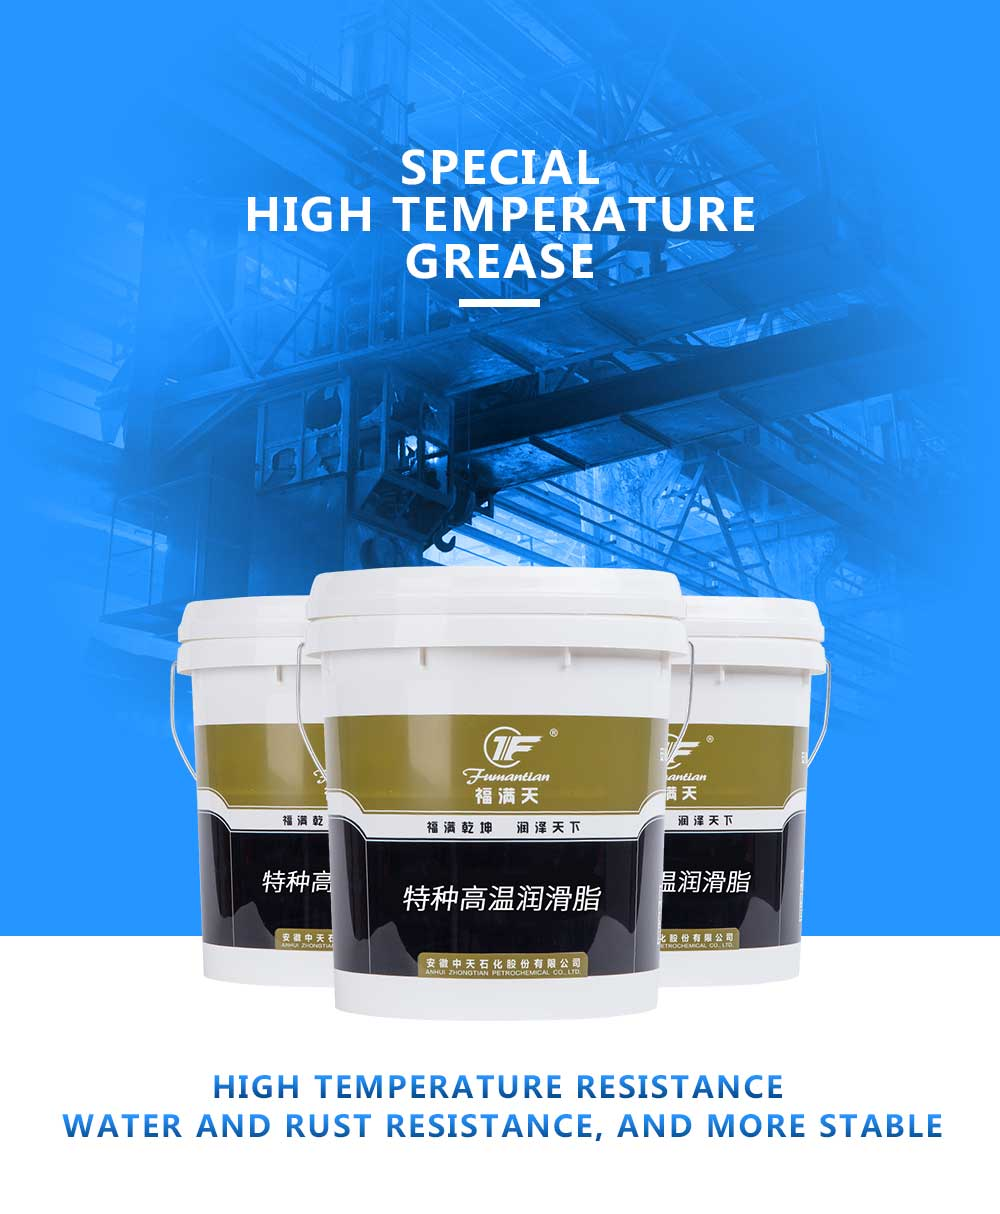 600 Degree Celsius LEARNBER Ultra- High Temperature Synthetic Grease